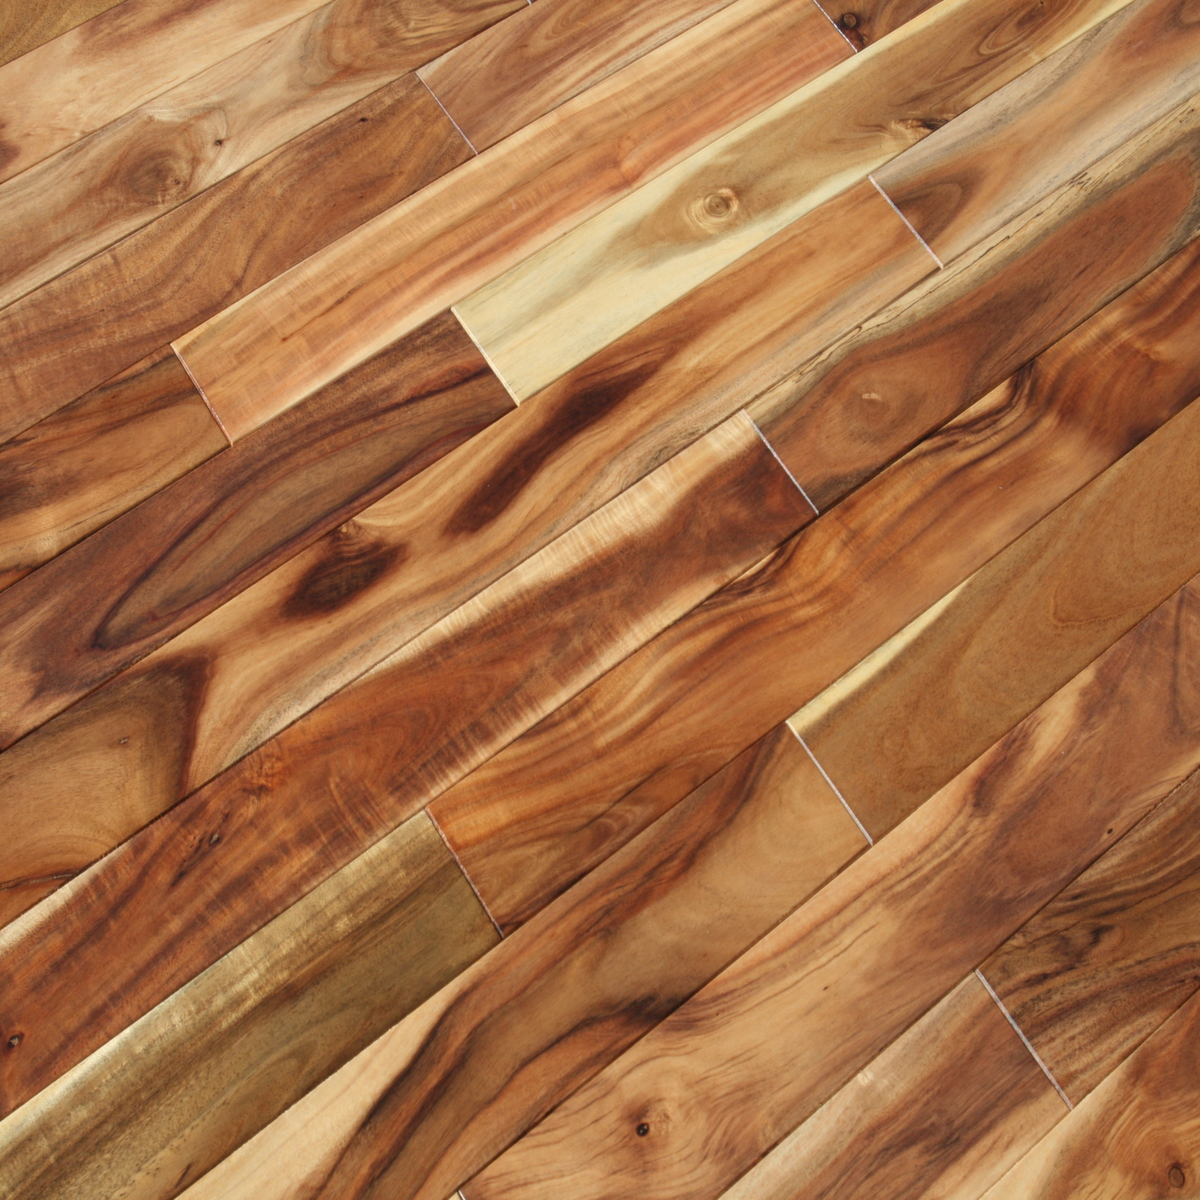 Wood Flooring Product : Acacia blonde hardwood flooring confusa wood floors